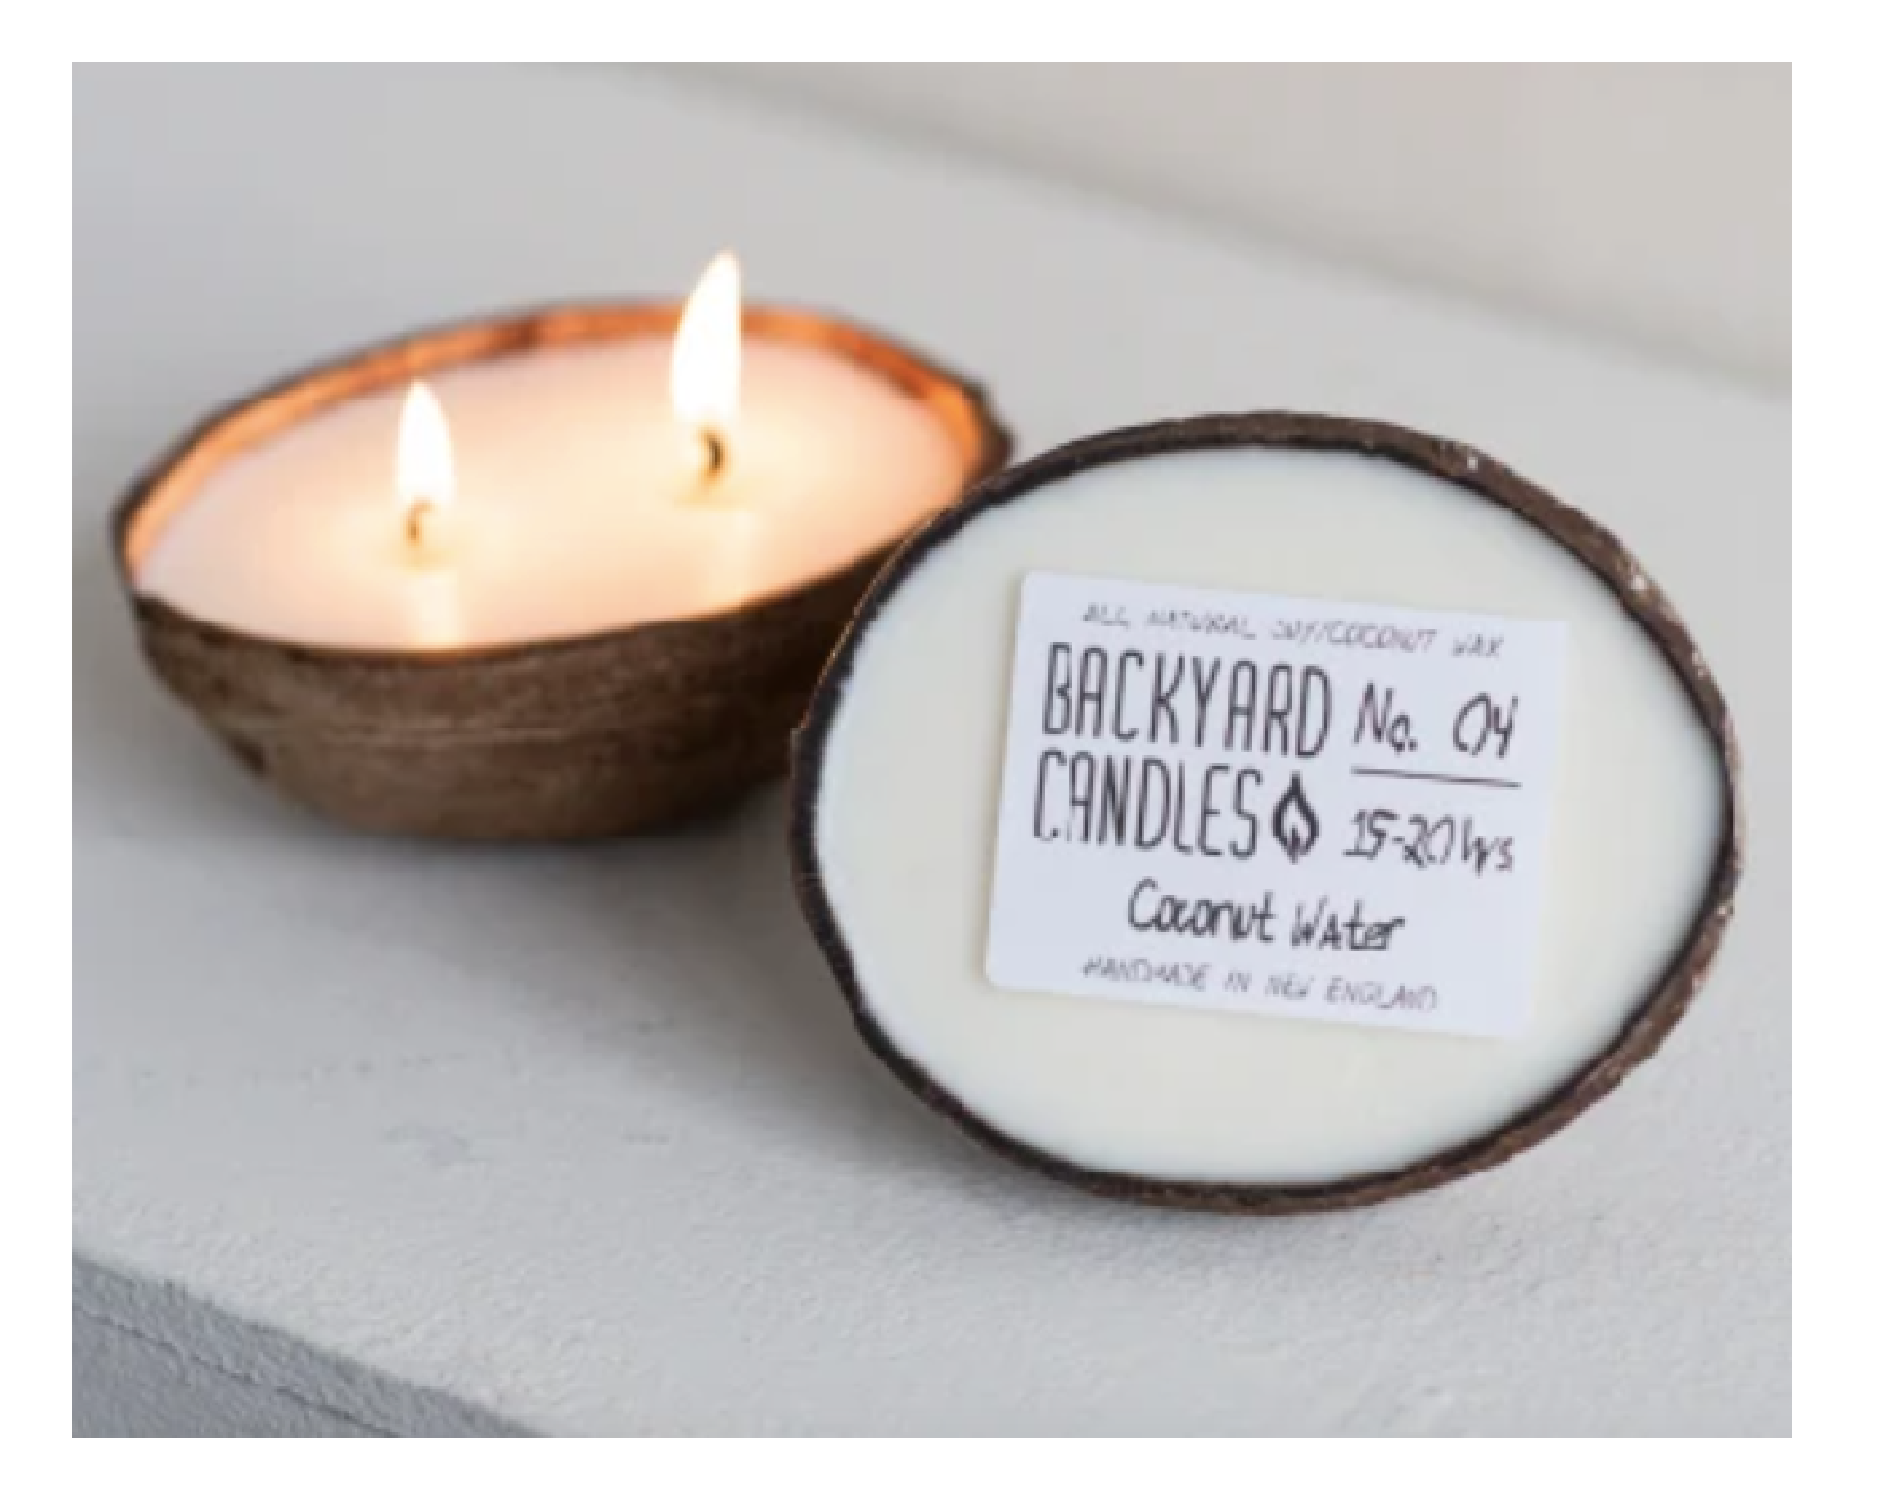 Candle in a Coconut shell from Backyard Candle Company